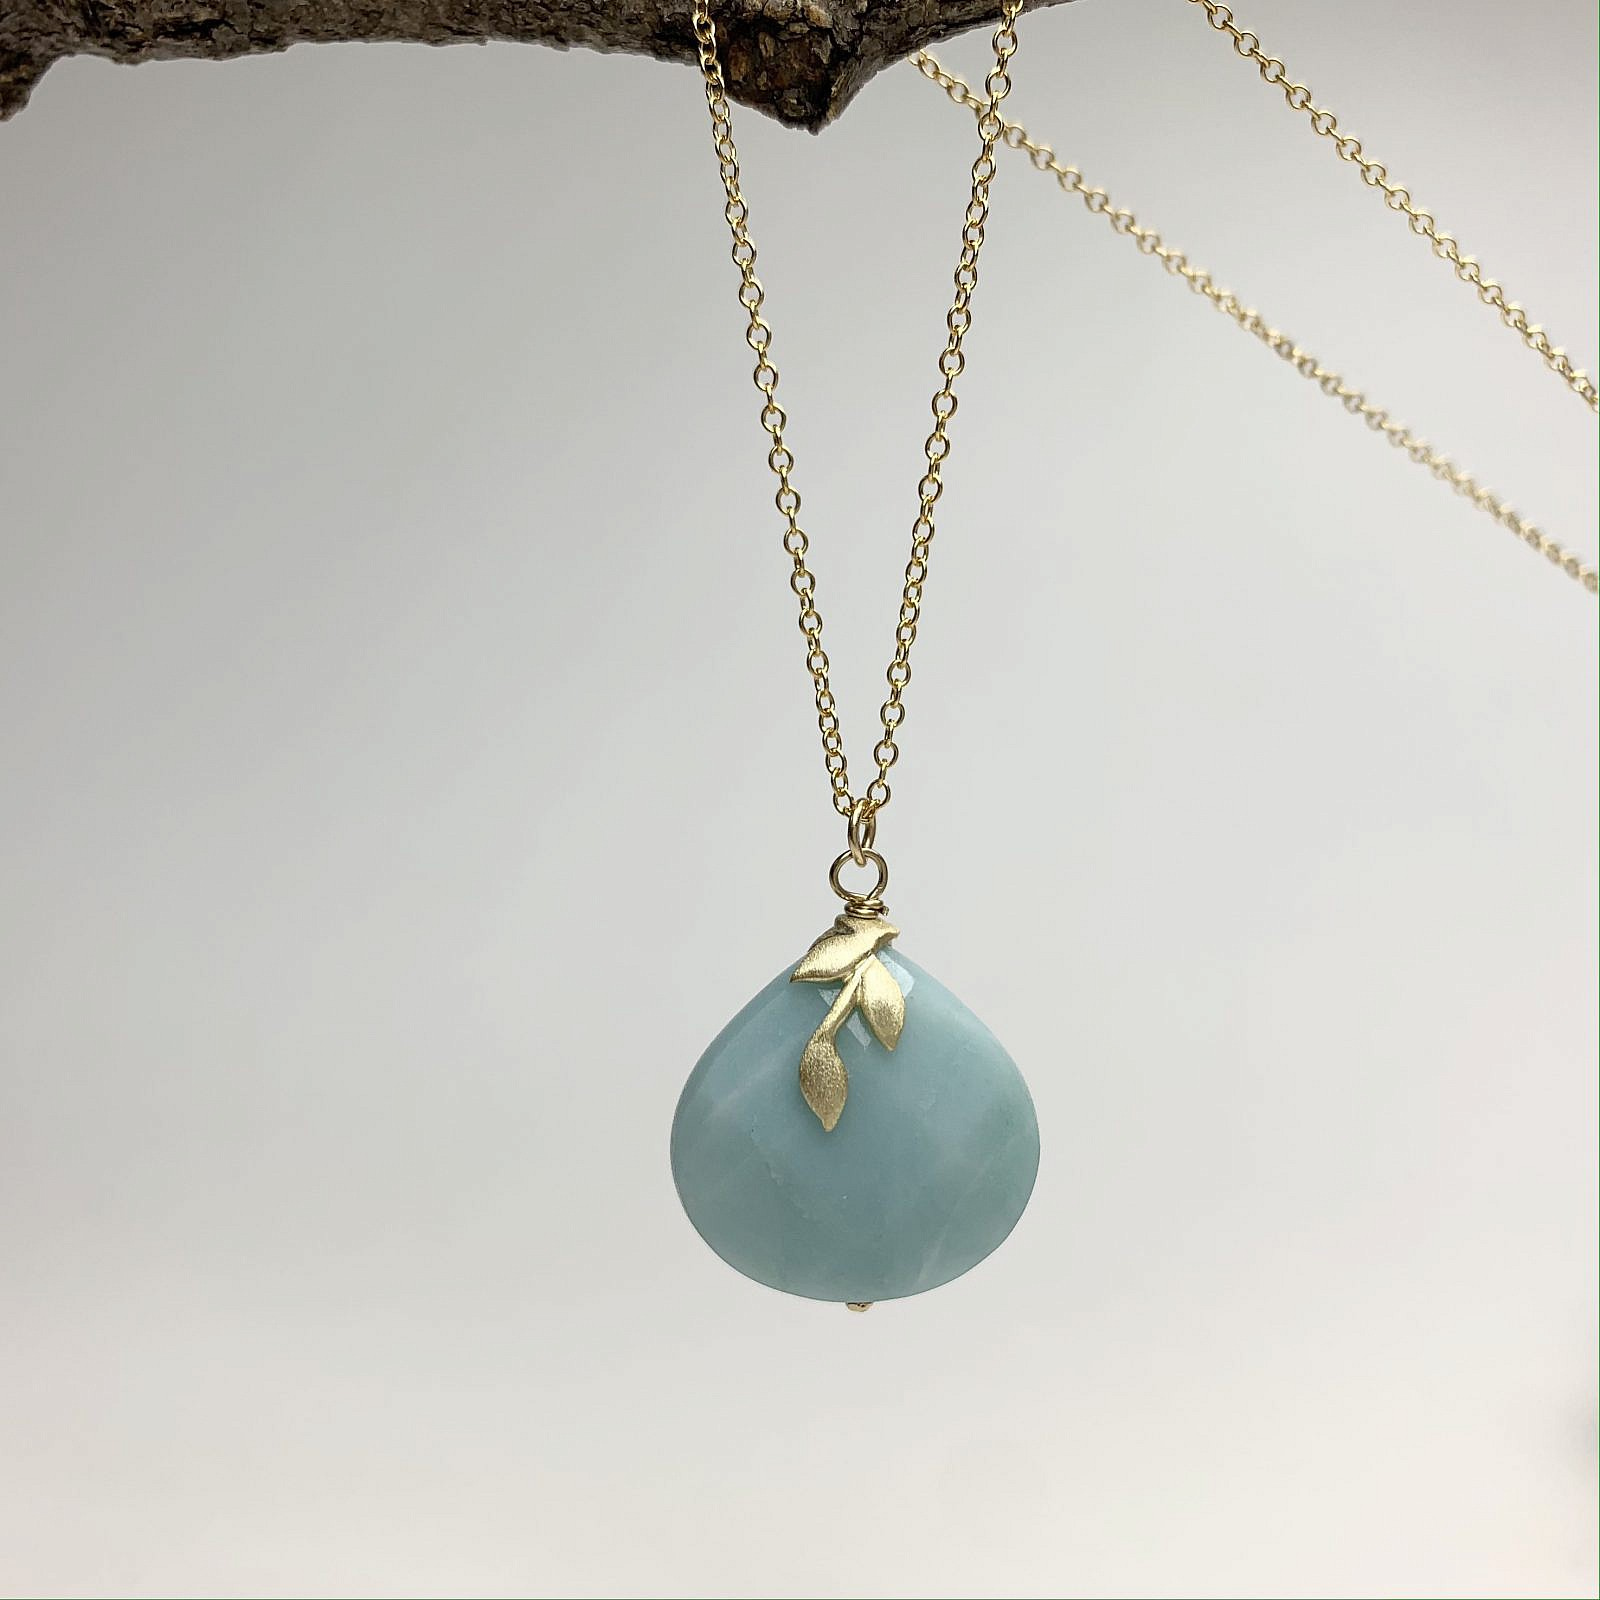 chalcedony rose precious gemstone quartz crystals teardrop pendant on gold filled necklace natural gemstone gold necklace